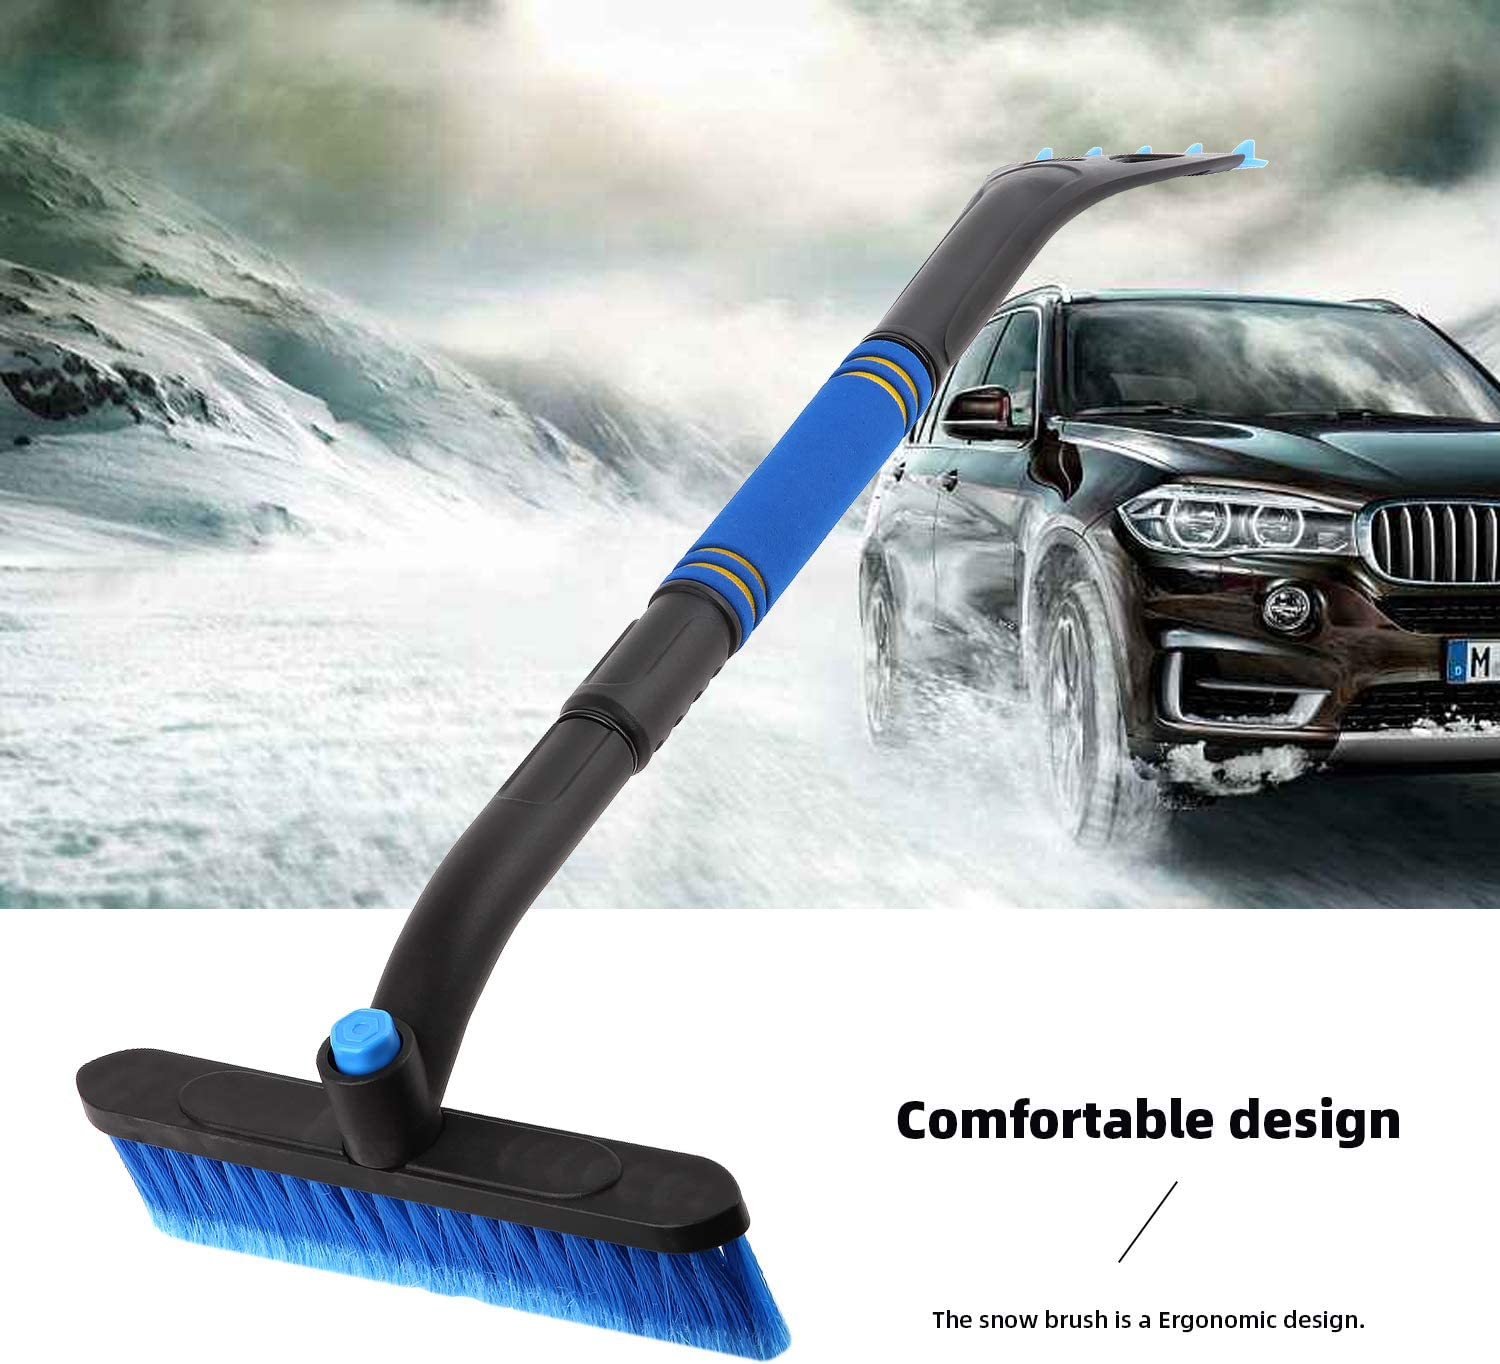 PVC Brush /& Pivoting Head Telescopic Snow Removal Tools for Car SUV FOCHEA Snow Brush and Ice Scraper for Car Windshield Snow Scraper for Car with Foam Grip Extendable /& Detachable